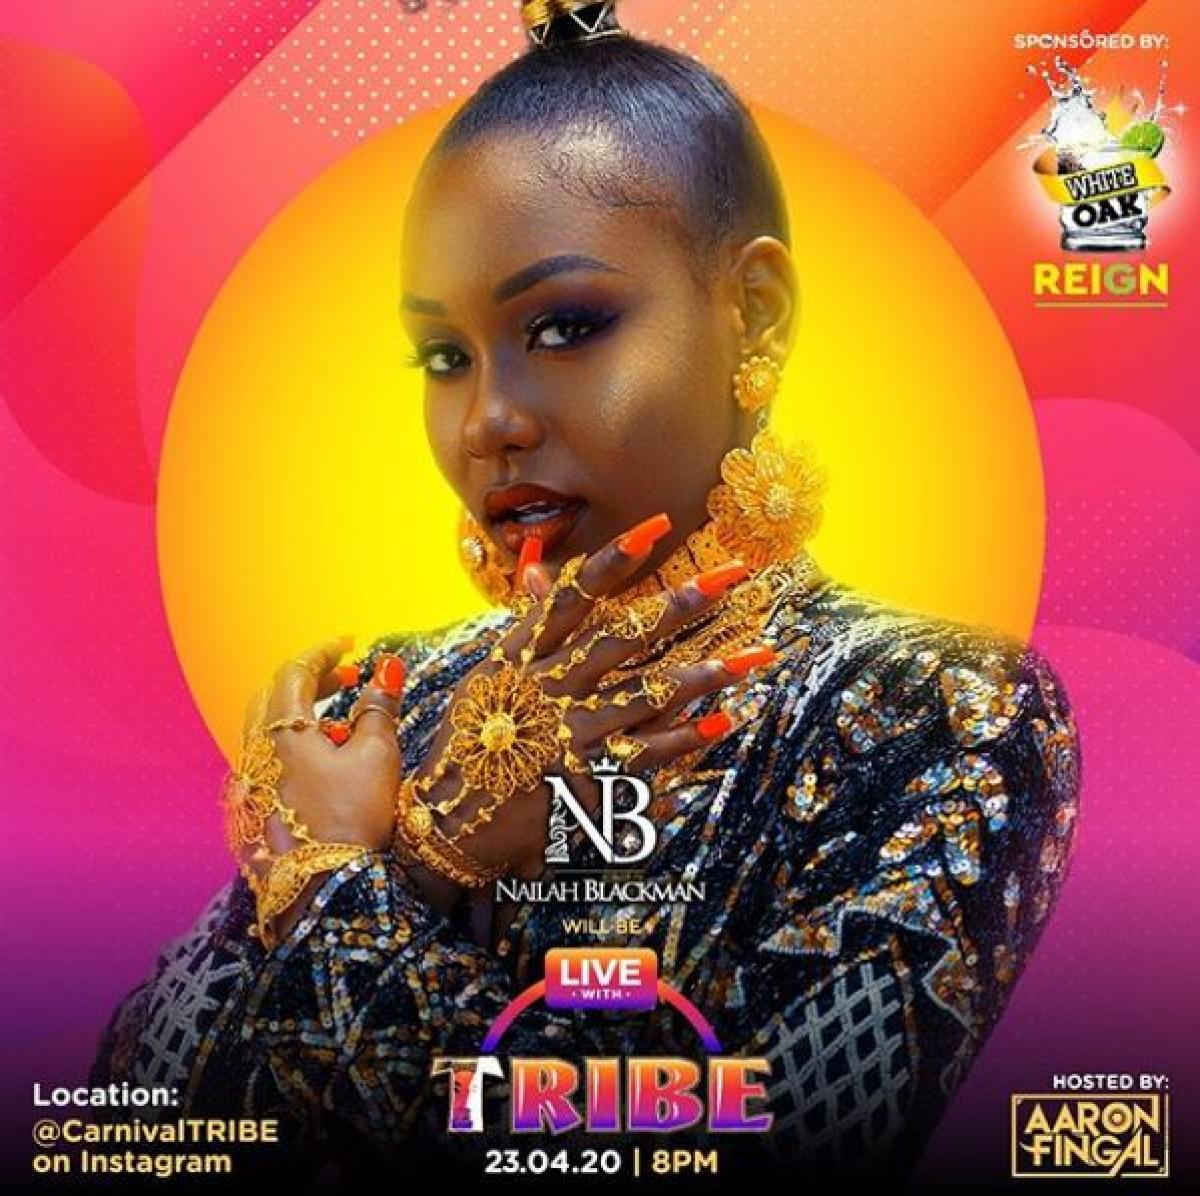 Nailah Is Live With Tribe flyer or graphic.